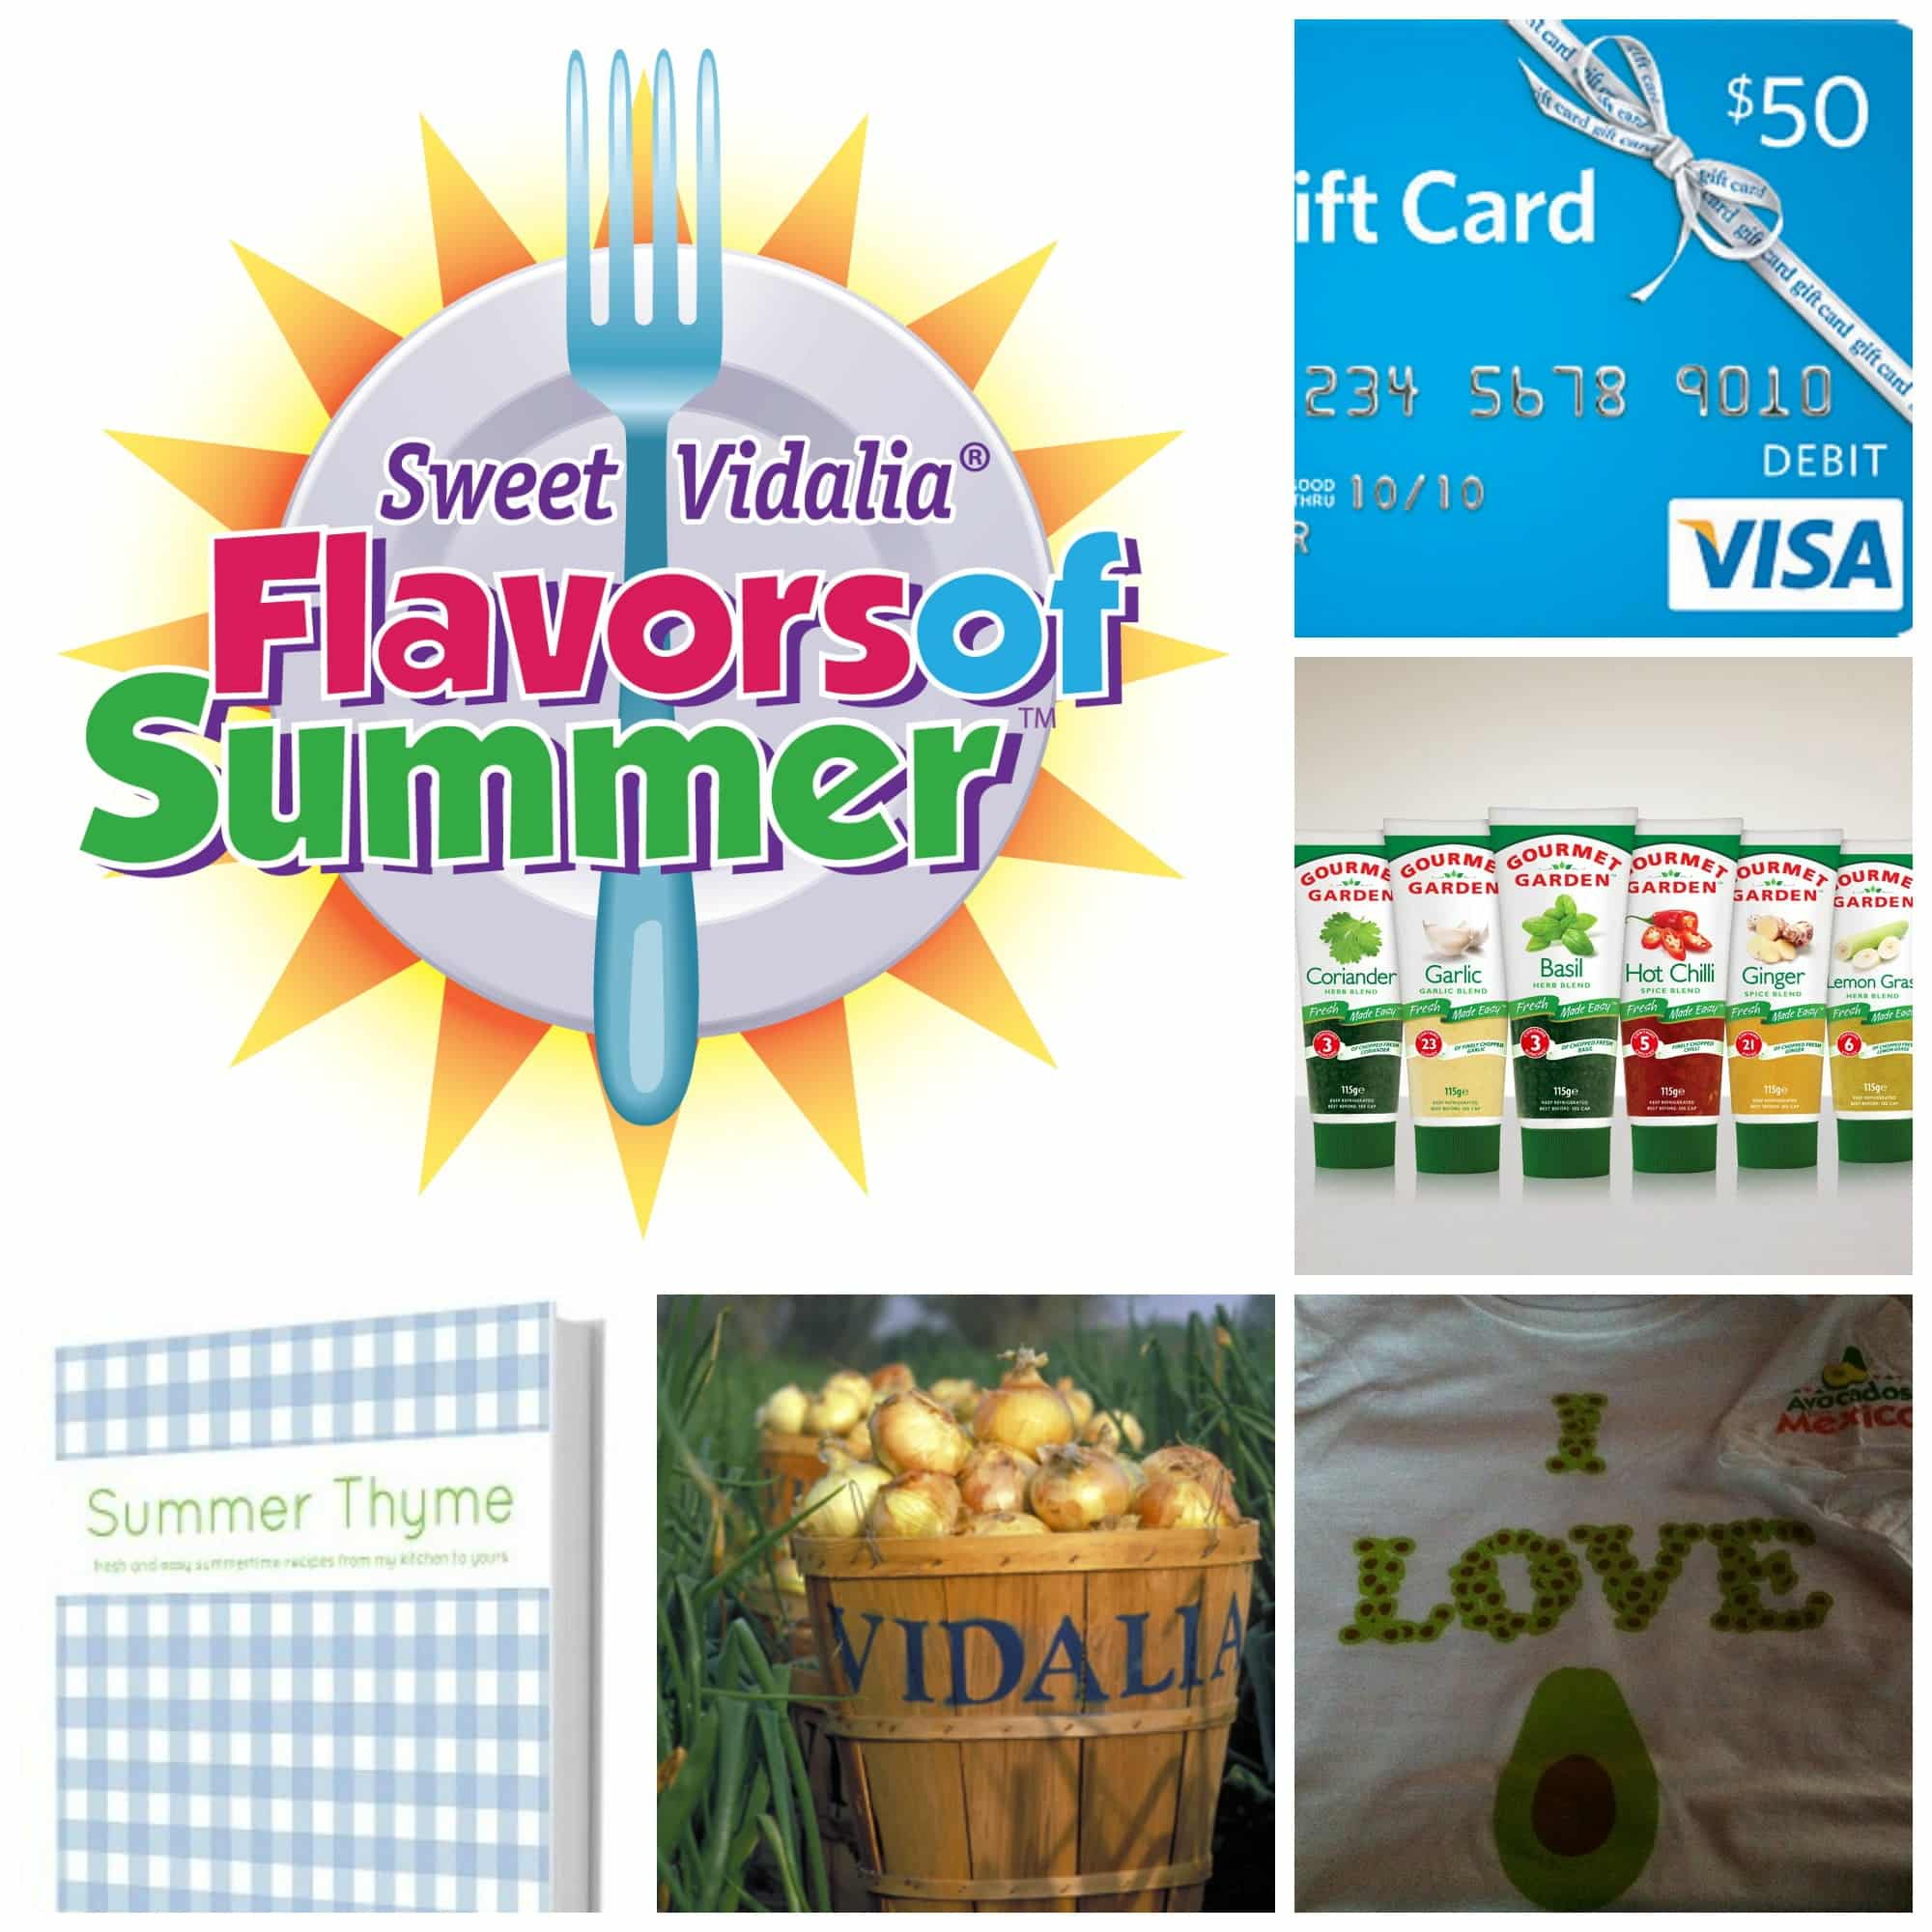 "The Virtual Picnic Prizes: 7 prize packs each containing a $50 Visa Gift Card, , an ""I Love Avocados"" t-shirt, the newly released cookbook ""Summer Thyme"" from blogger Jennifer Dempsey, fresh Vidalia onions, and squeezable herbs from Gourmet Garden."